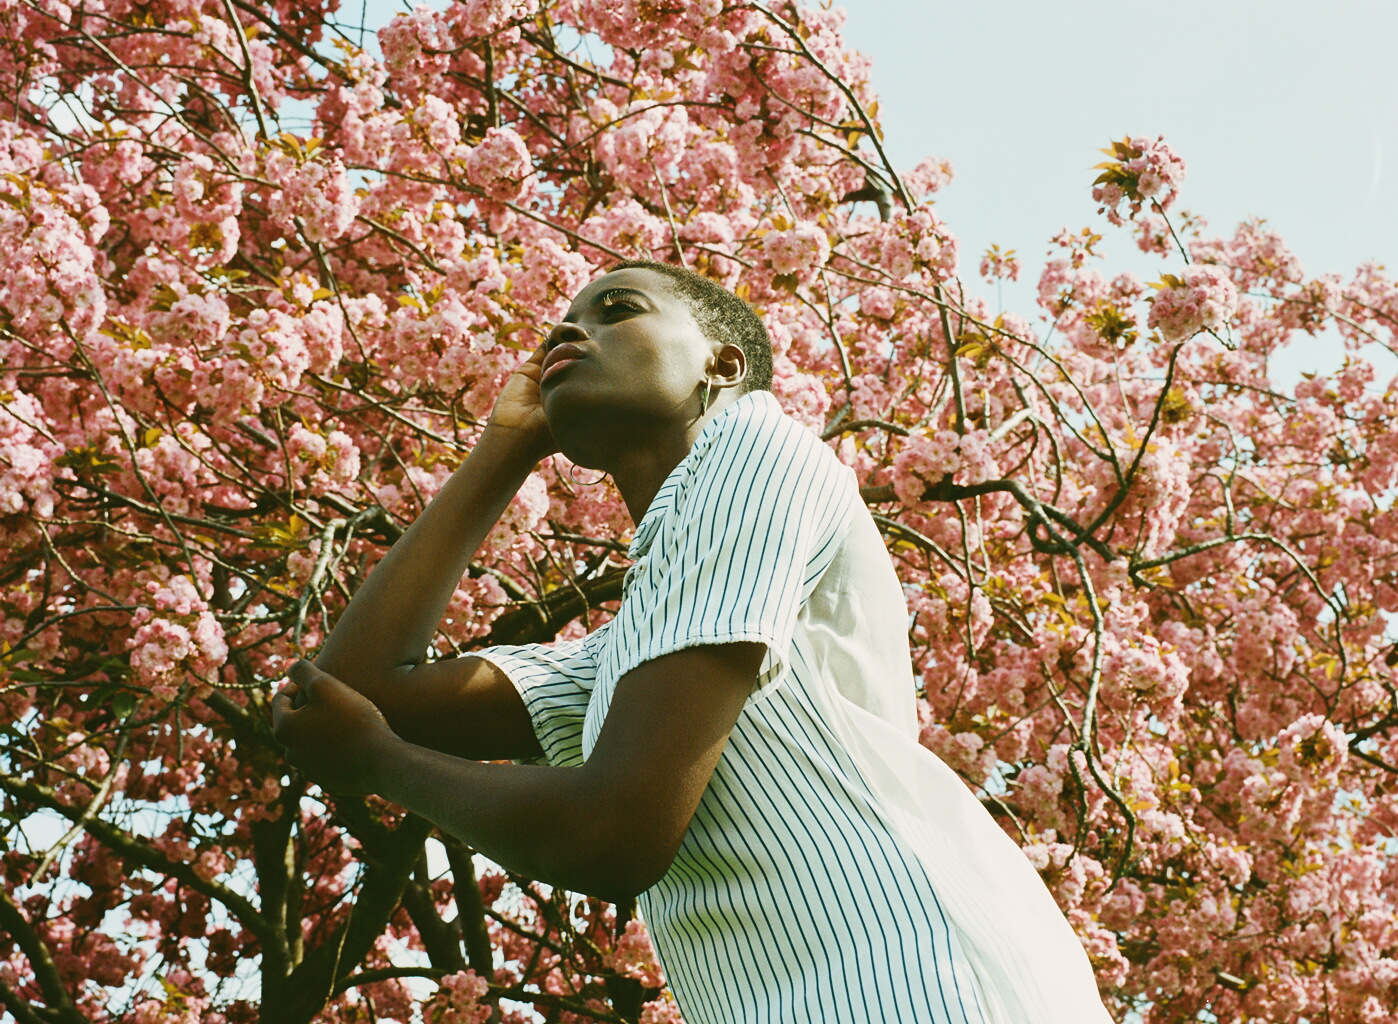 EXCLUSIVE / GARDEN PARTY by Hope Victoria Miller